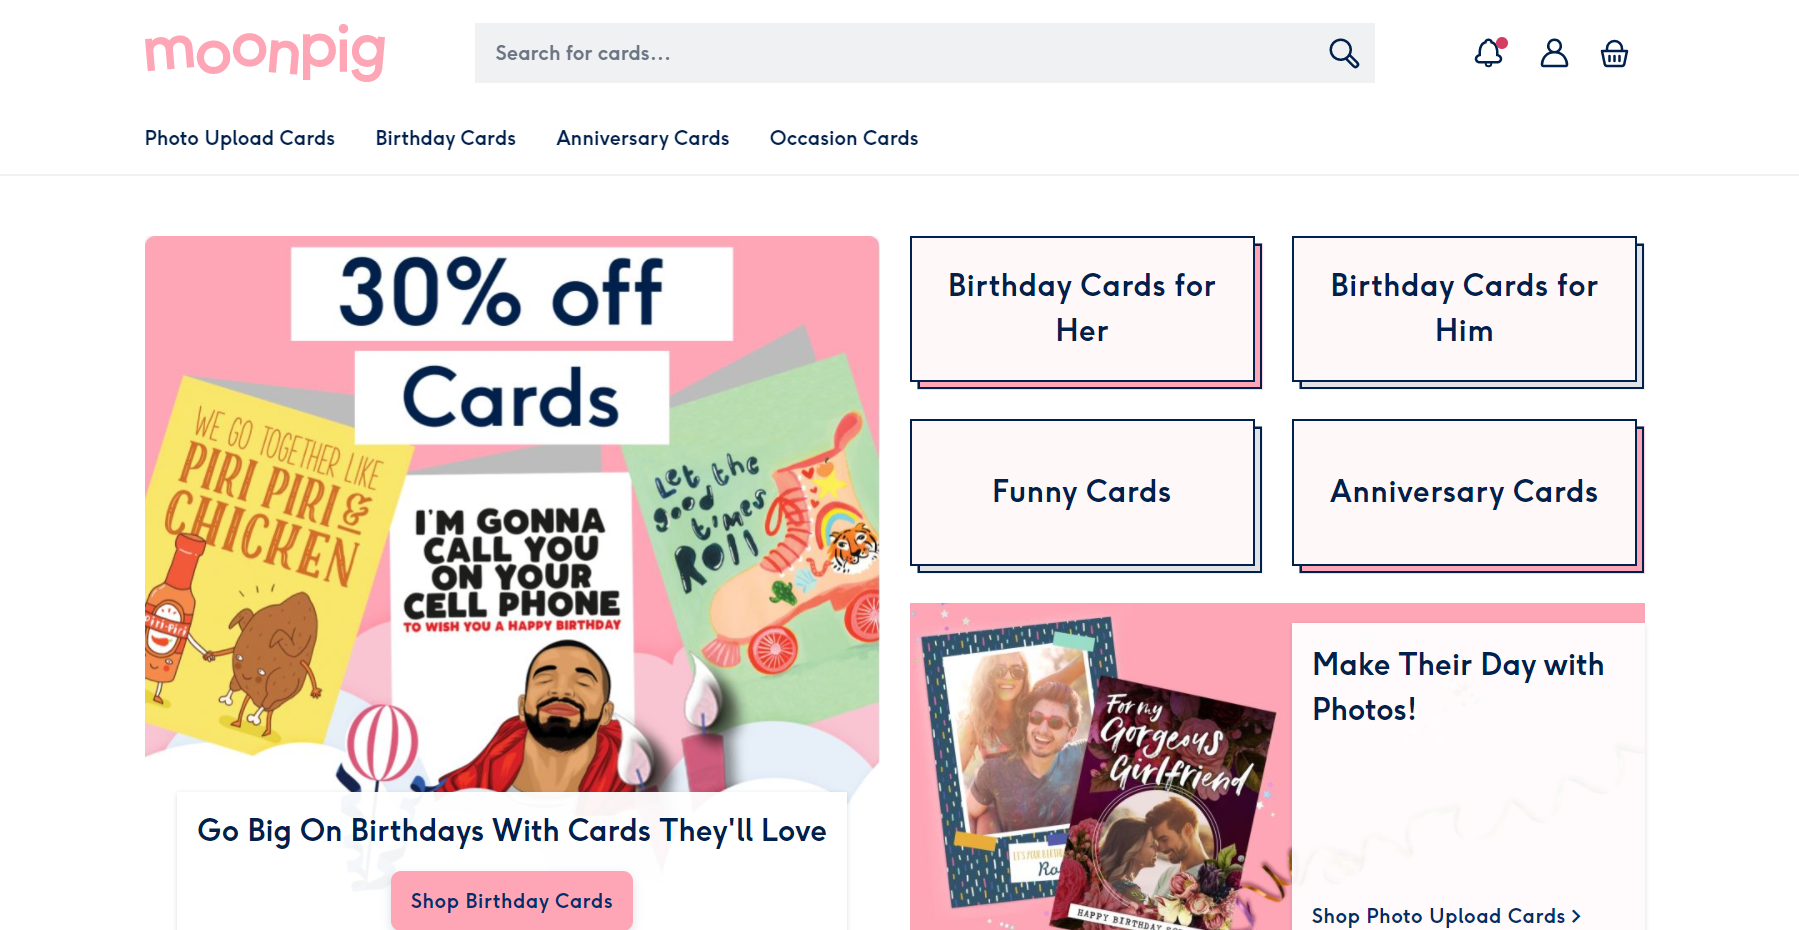 This is a screenshot taken from the US store for Moonpig.com showing the different categories of personalized greeting card designs they offer, including funny cards.